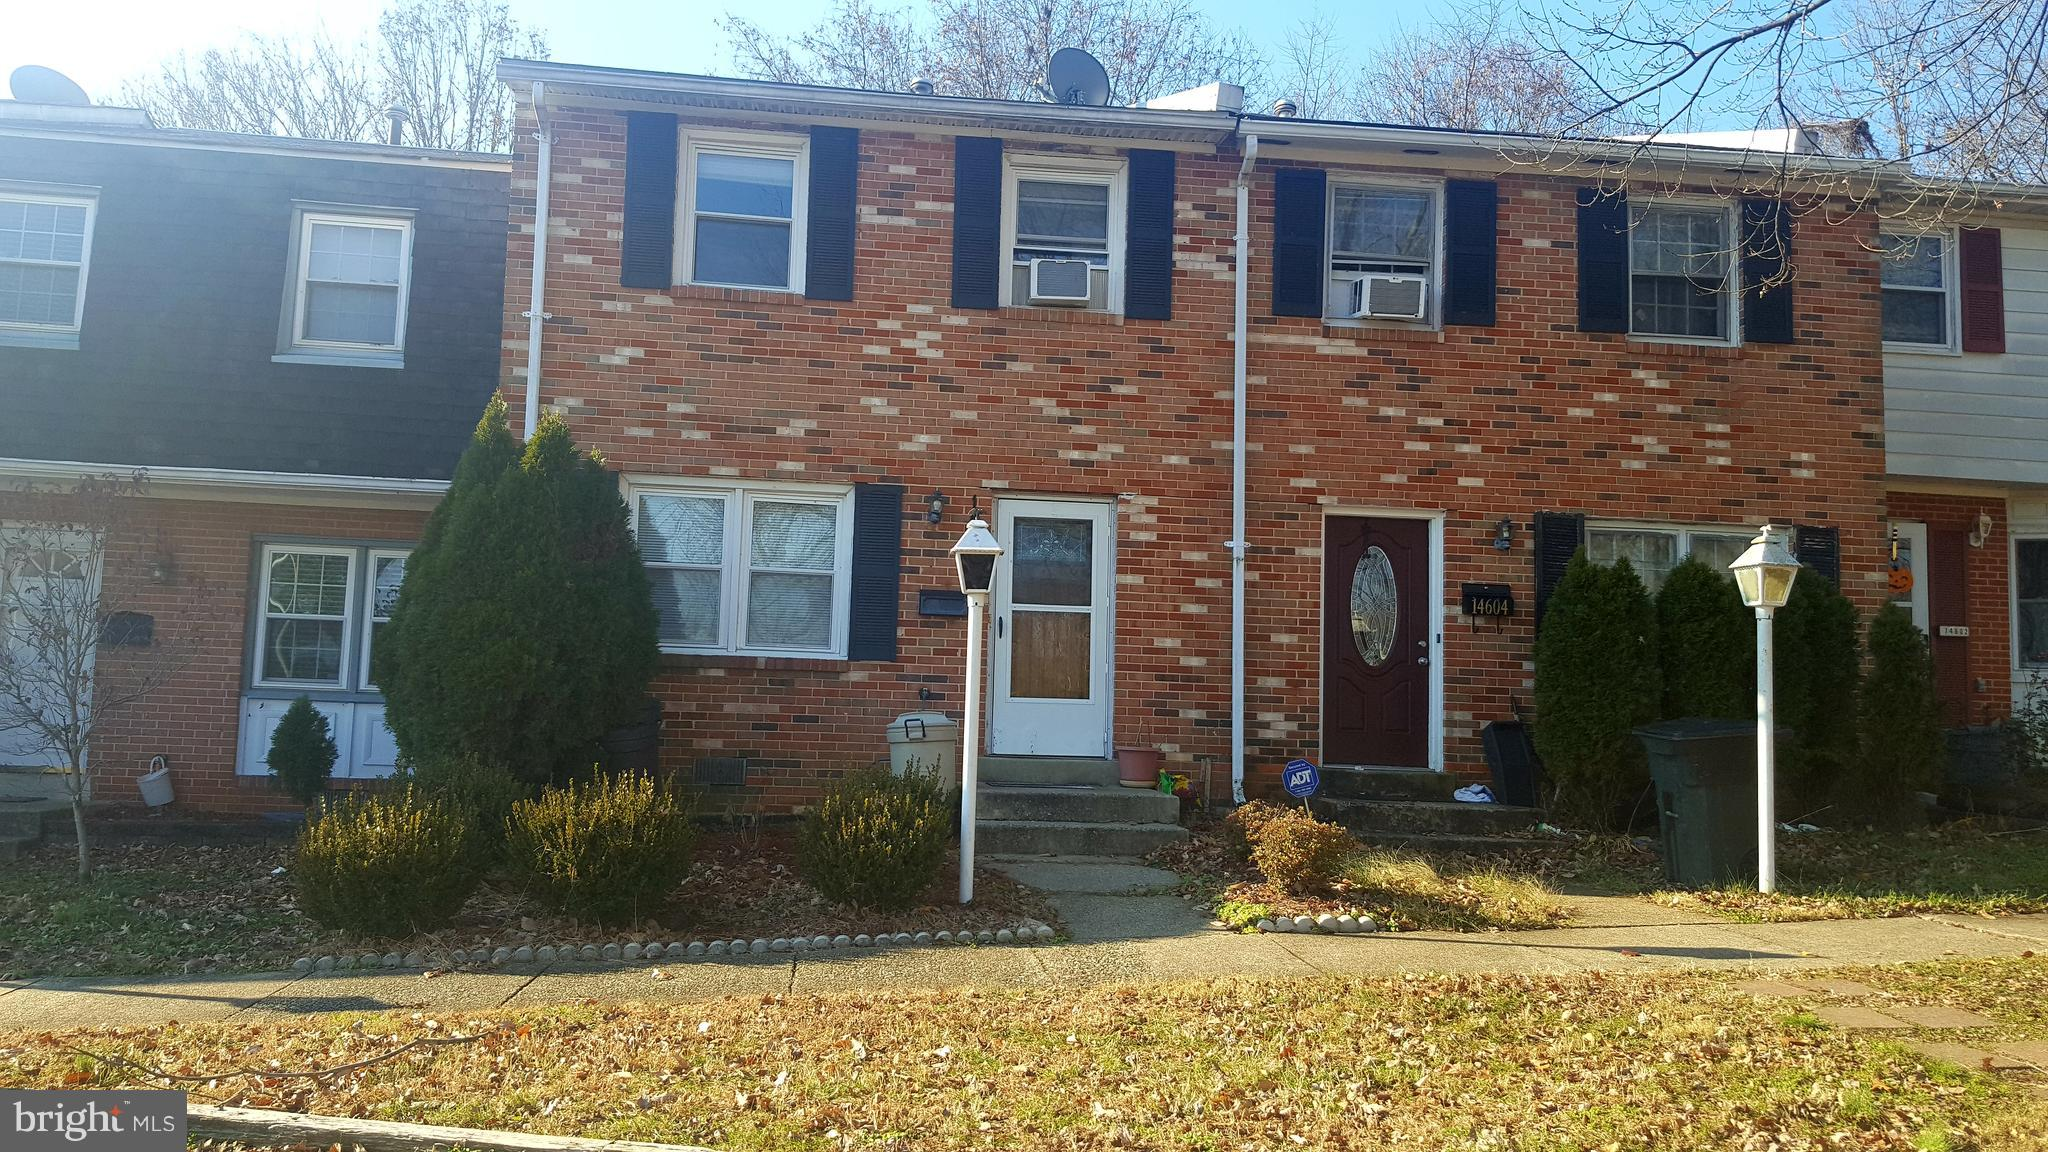 Great Opportunity! Priced to sell! 3 Bedrooms,1.5 Bath Townhouse, Brick front,  Don't miss out!